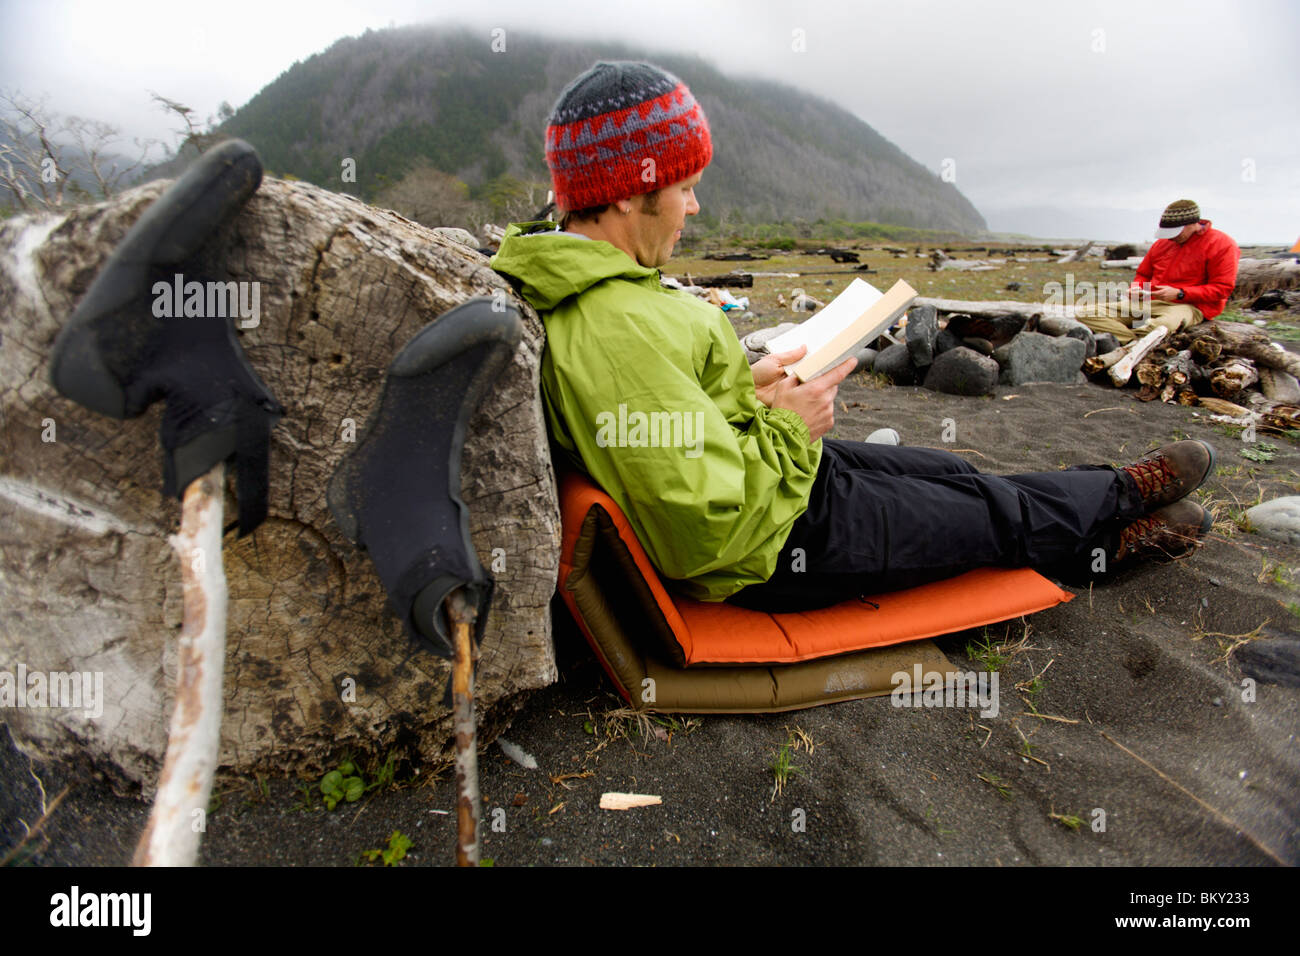 Two men find leisure at camp on The Lost Coast, California. - Stock Image